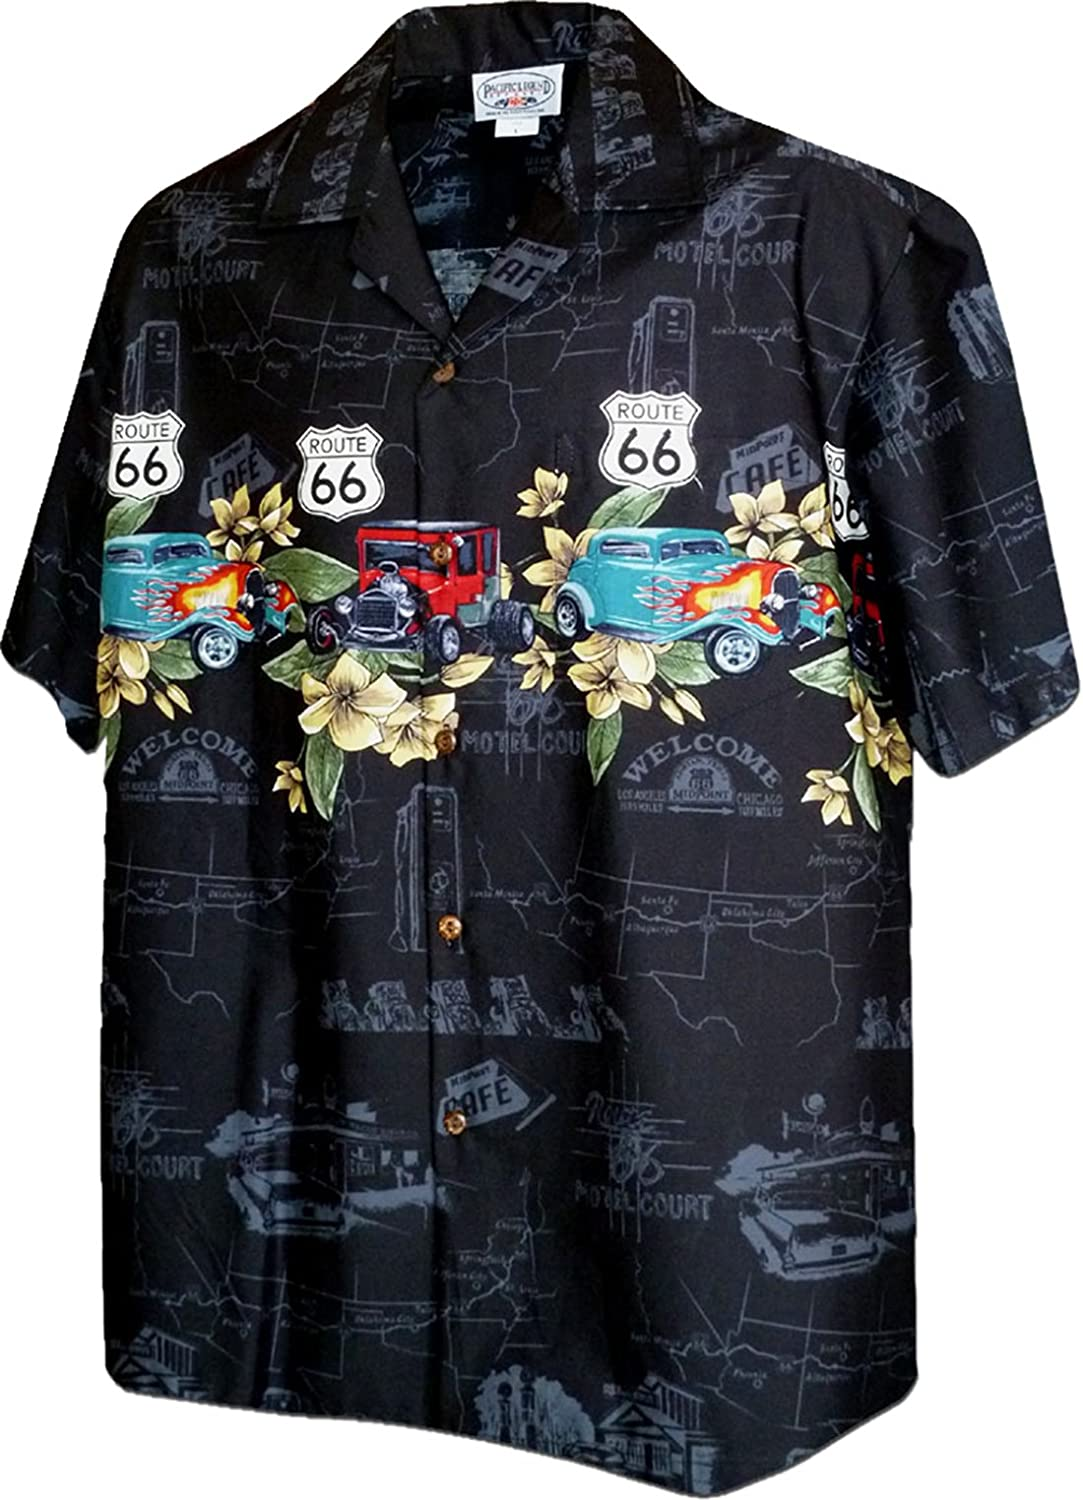 Pacific Legend Mens M to 4X RT 66 Flaming Roadster Chest Band Shirt